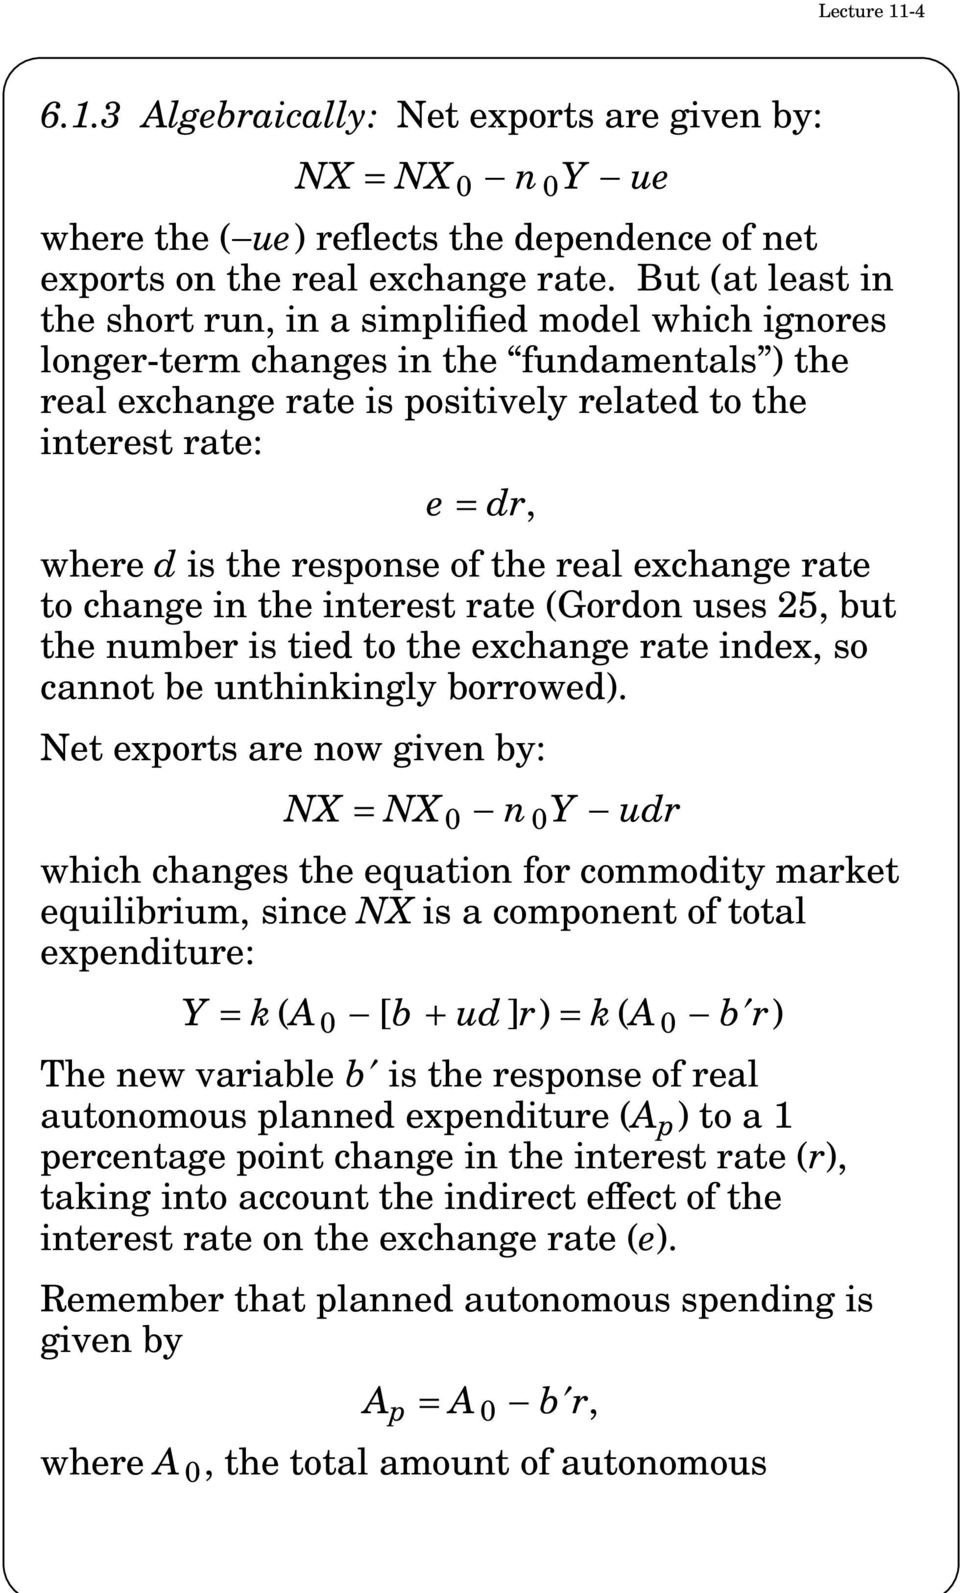 response of the real exchange rate to change in the interest rate (Gordon uses 25, but the number is tied to the exchange rate index, so cannot be unthinkingly borrowed).